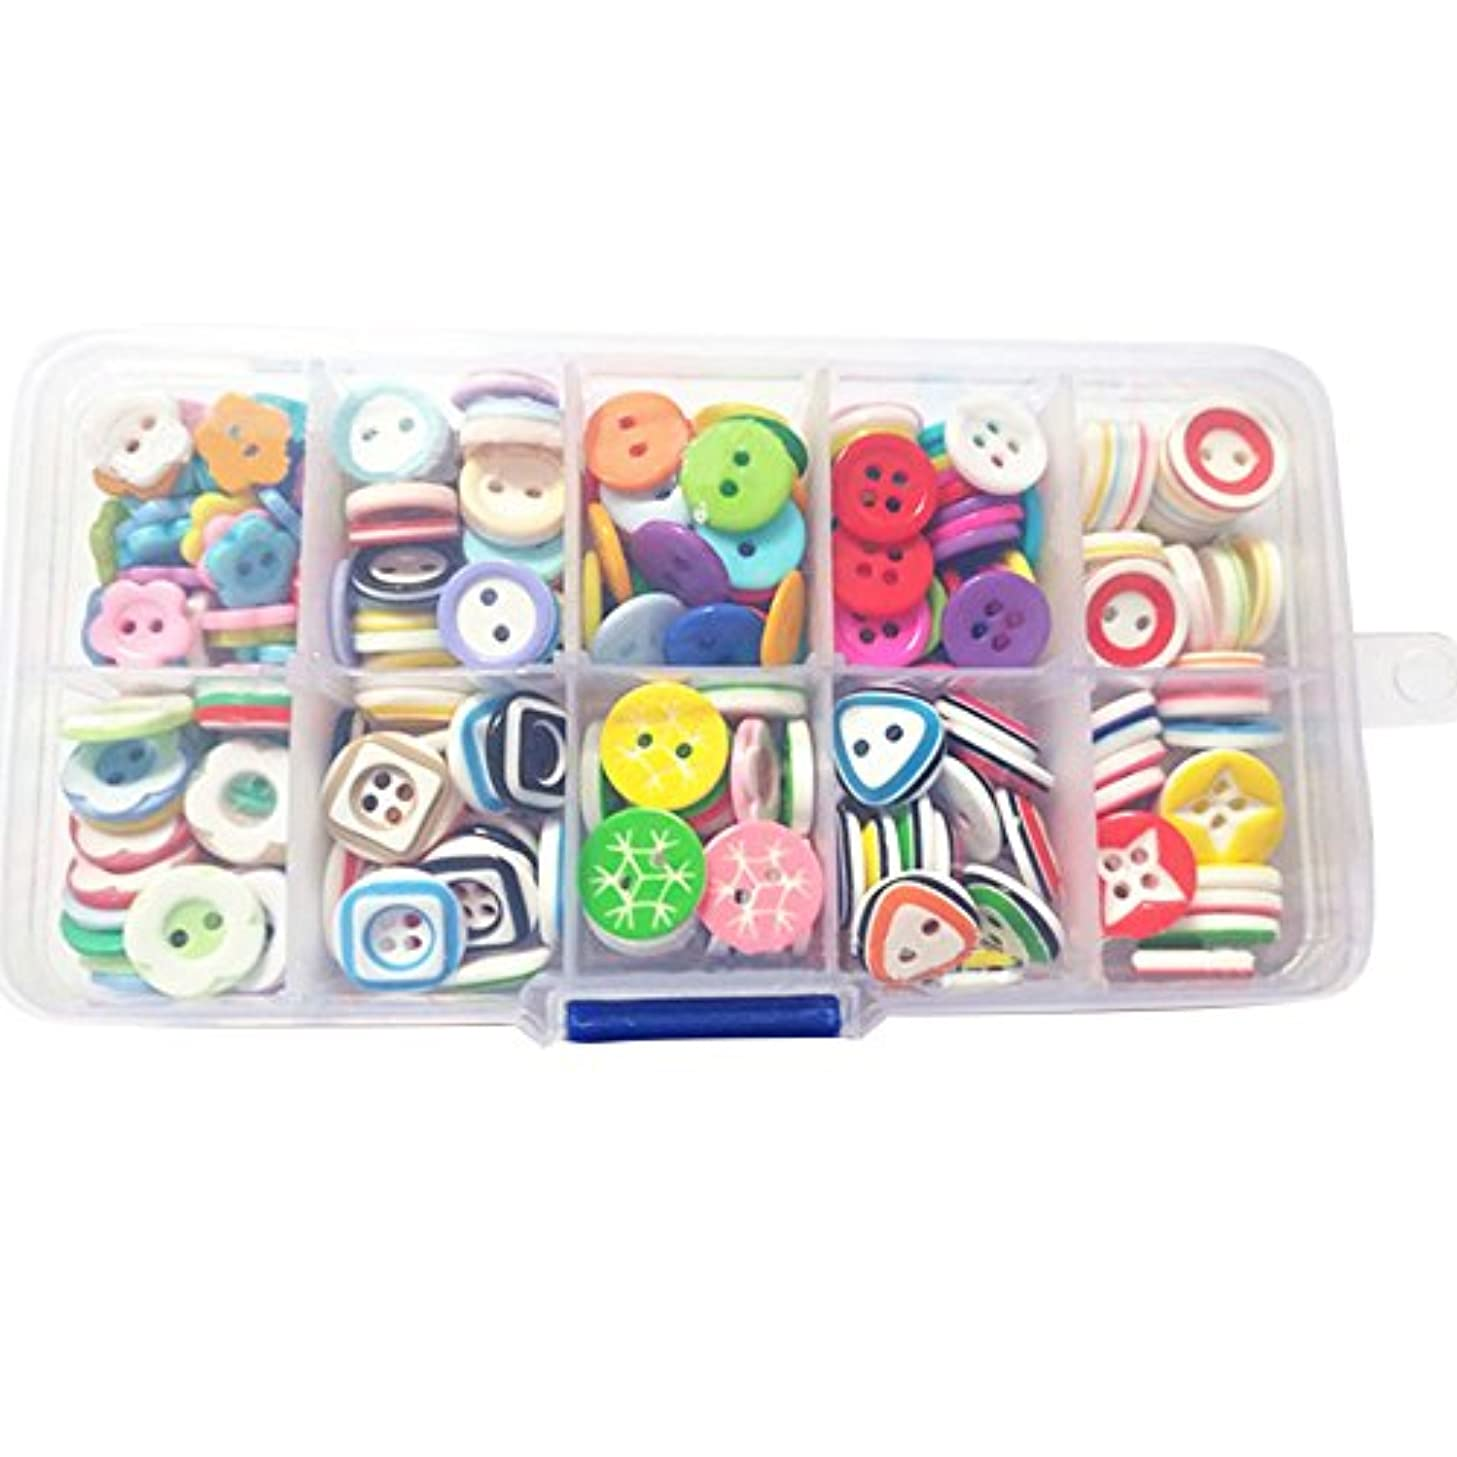 Souarts 285 Mixed Resin Buttons 2 Holes 4 Holes Scrapbooking Crafts Button for DIY with Box